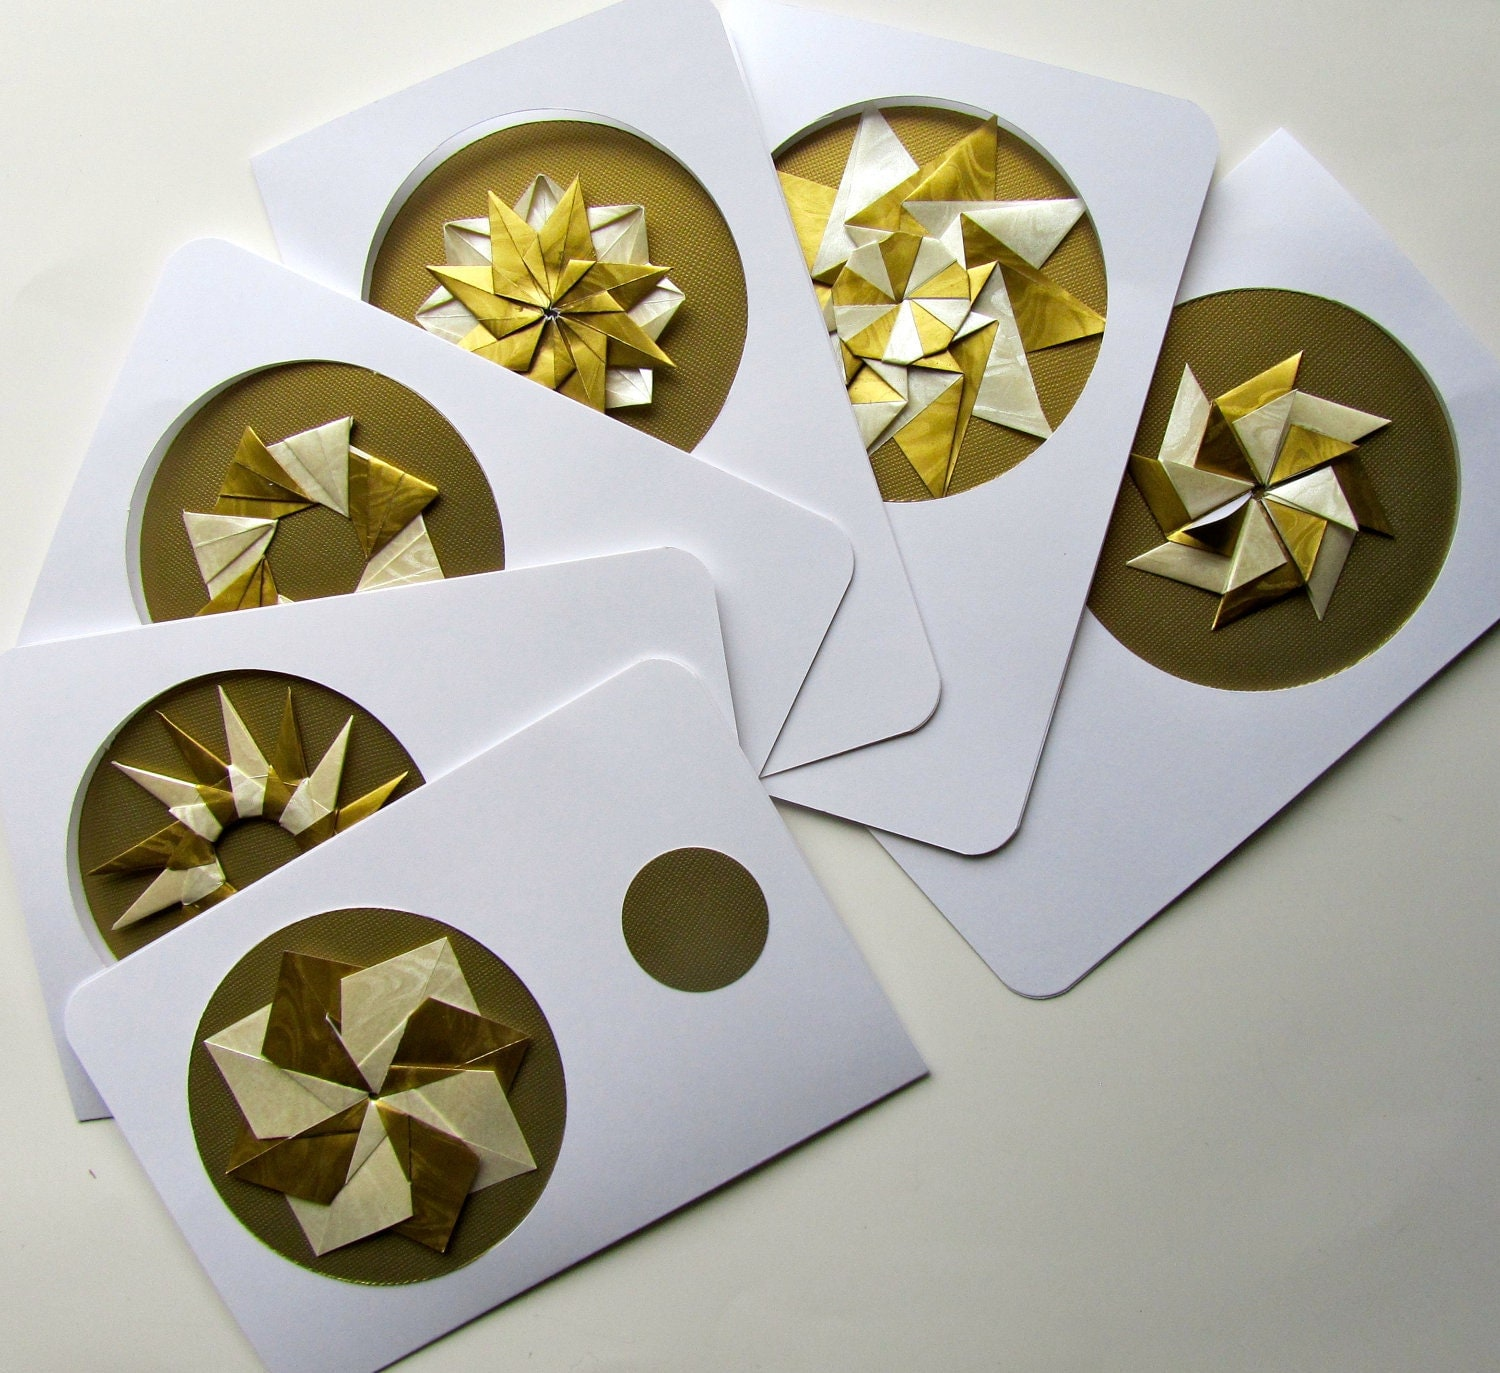 6 HOLIDAY Greeting Cards Contain DETACHABLE ORNAMENTS, Handmade as Stars/ Wreaths in Shimmery Metallic Gold and White on Gold. One Of A Kind